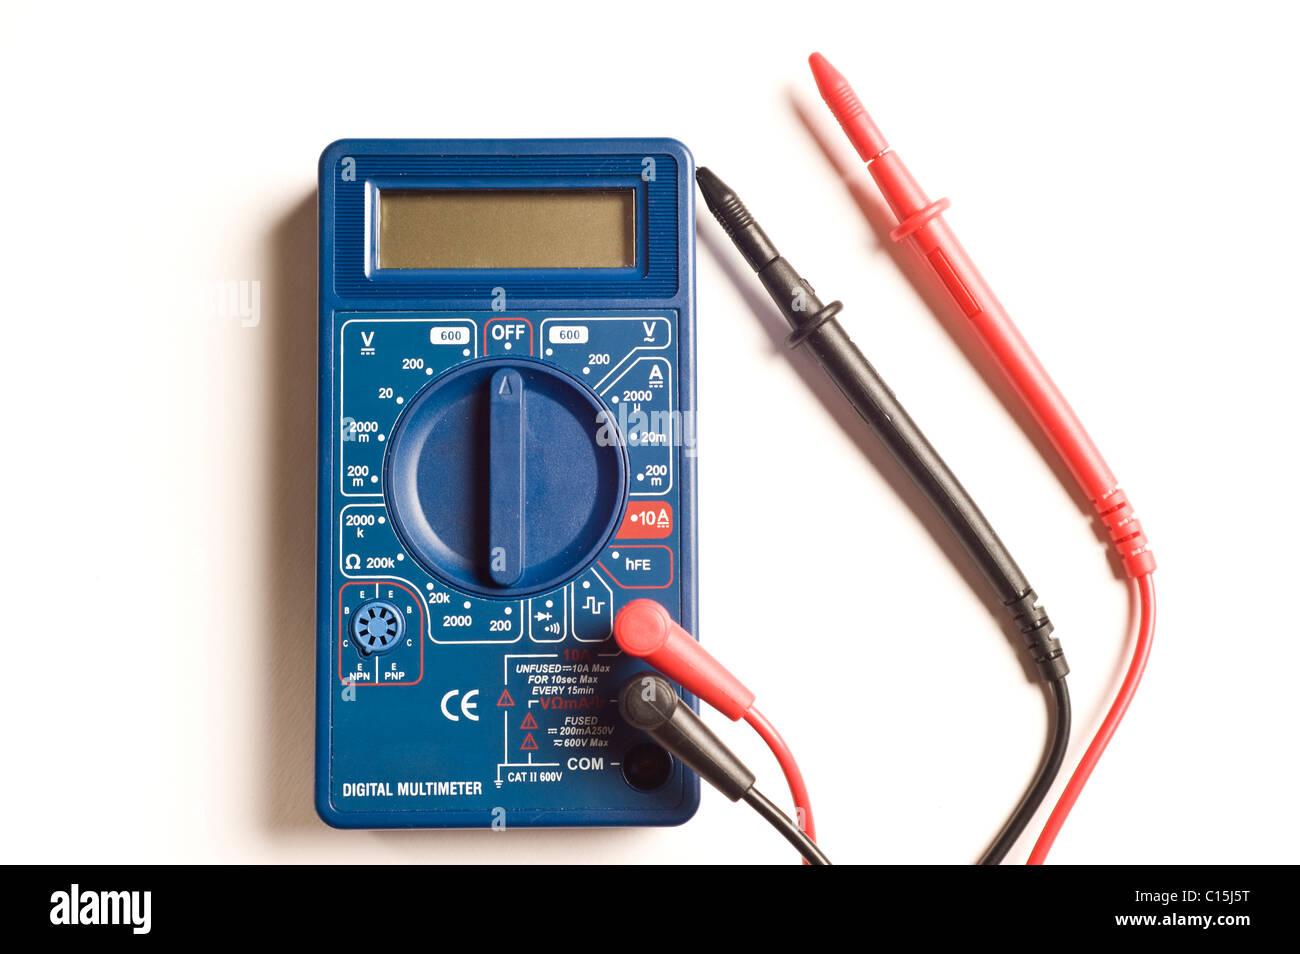 digital multimeter isolated - Stock Image